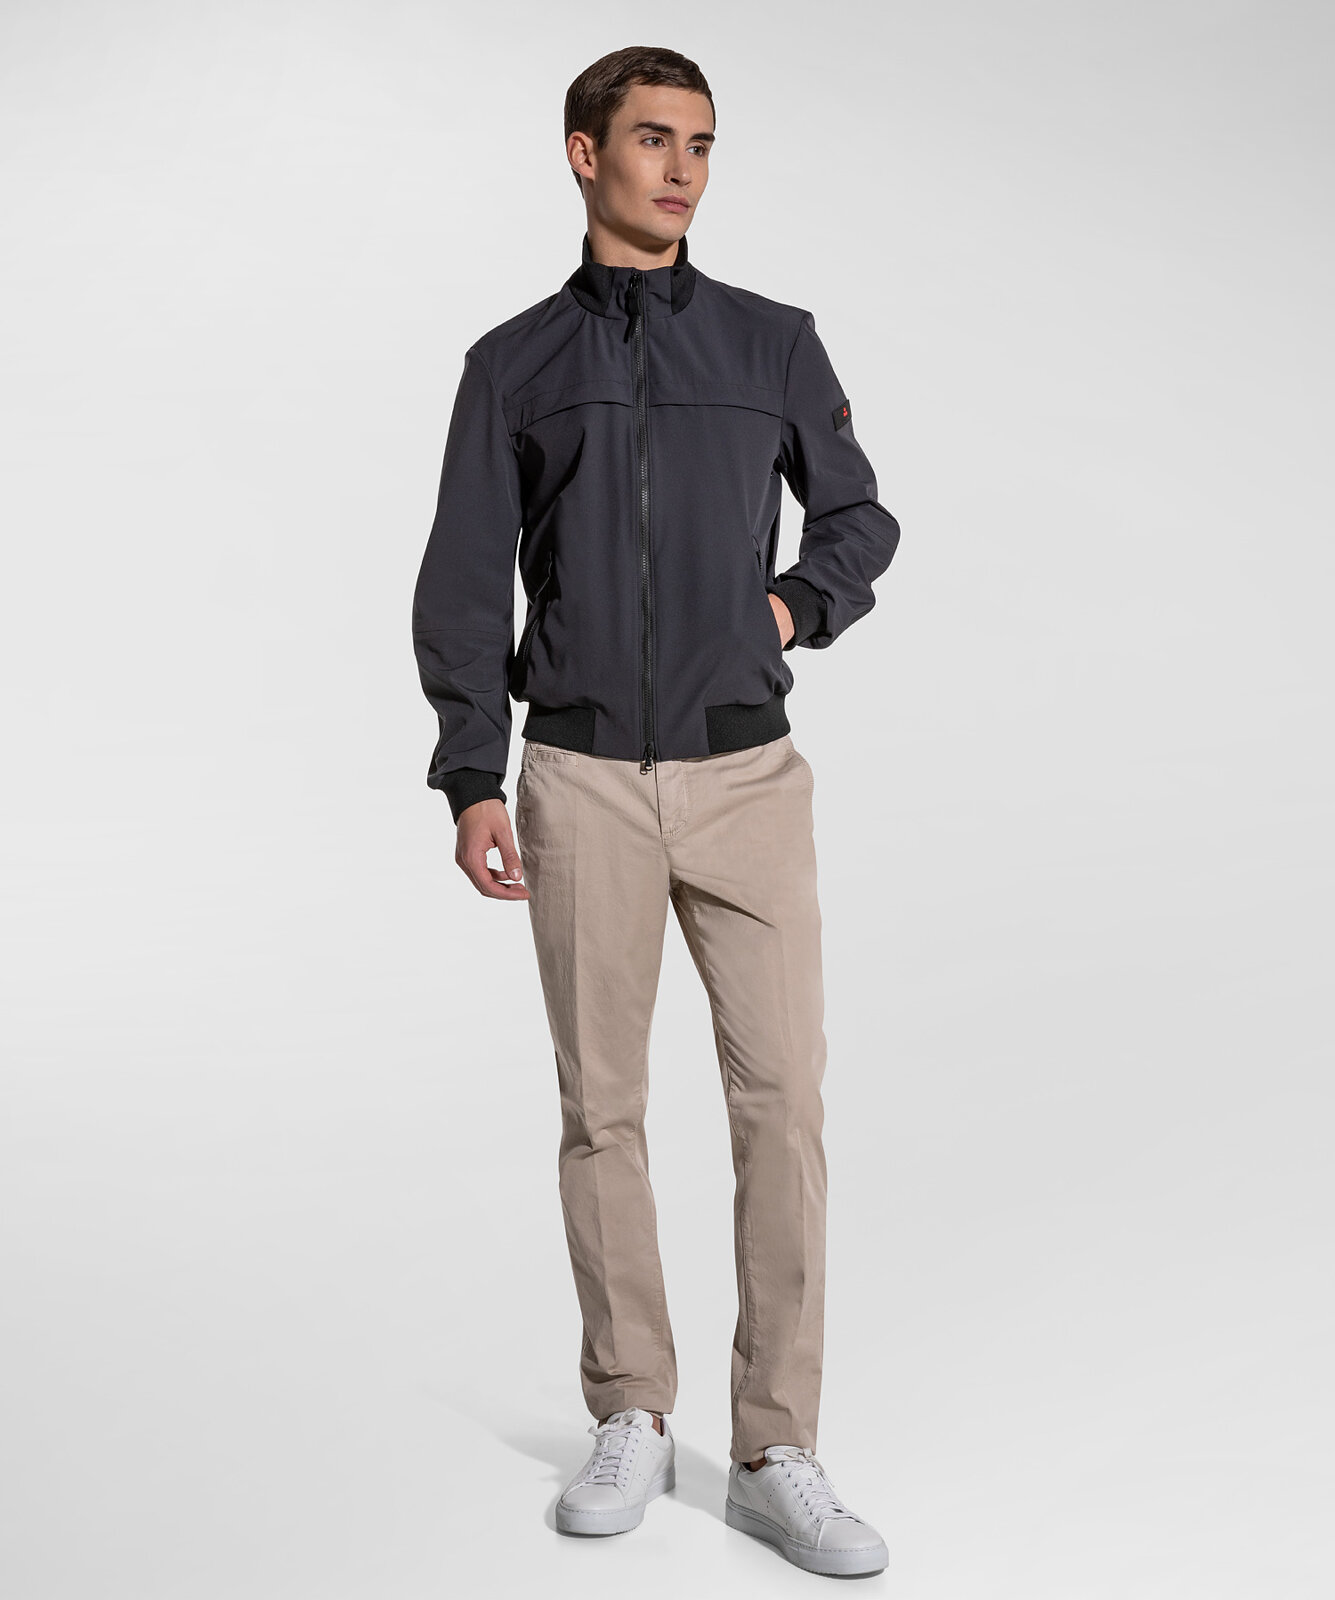 Smooth Bomber Jacket In Stretch Fabric - Peuterey